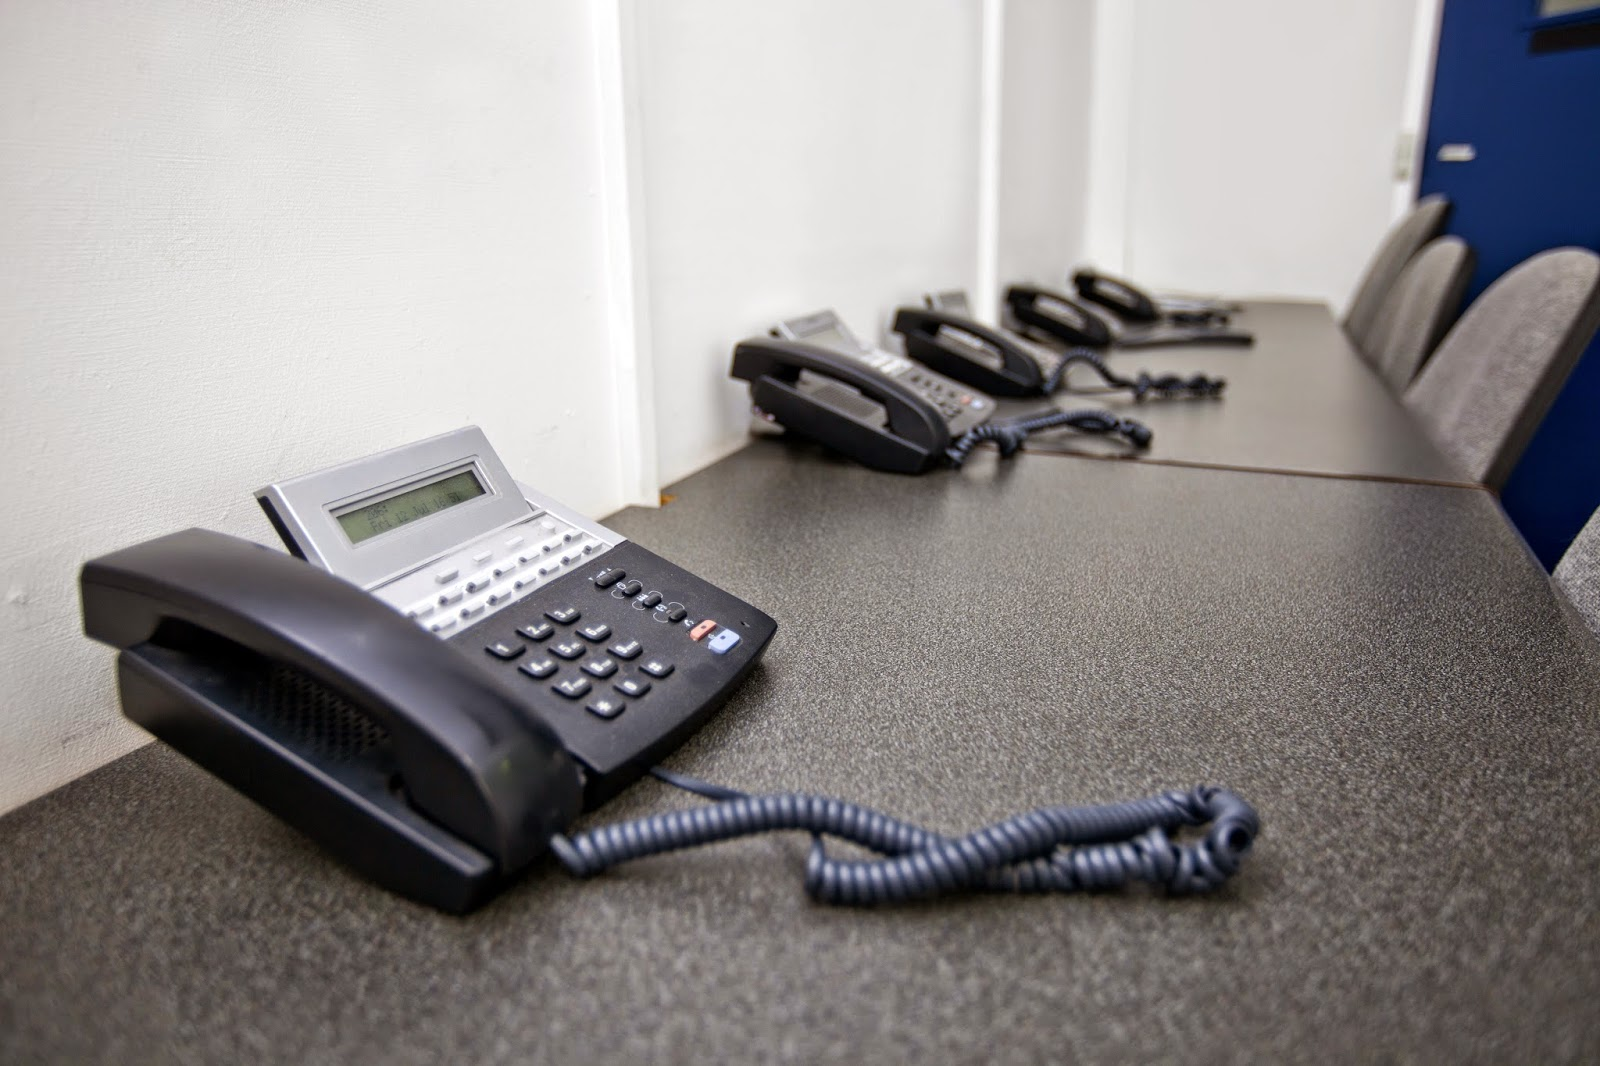 A lineup of business telephones